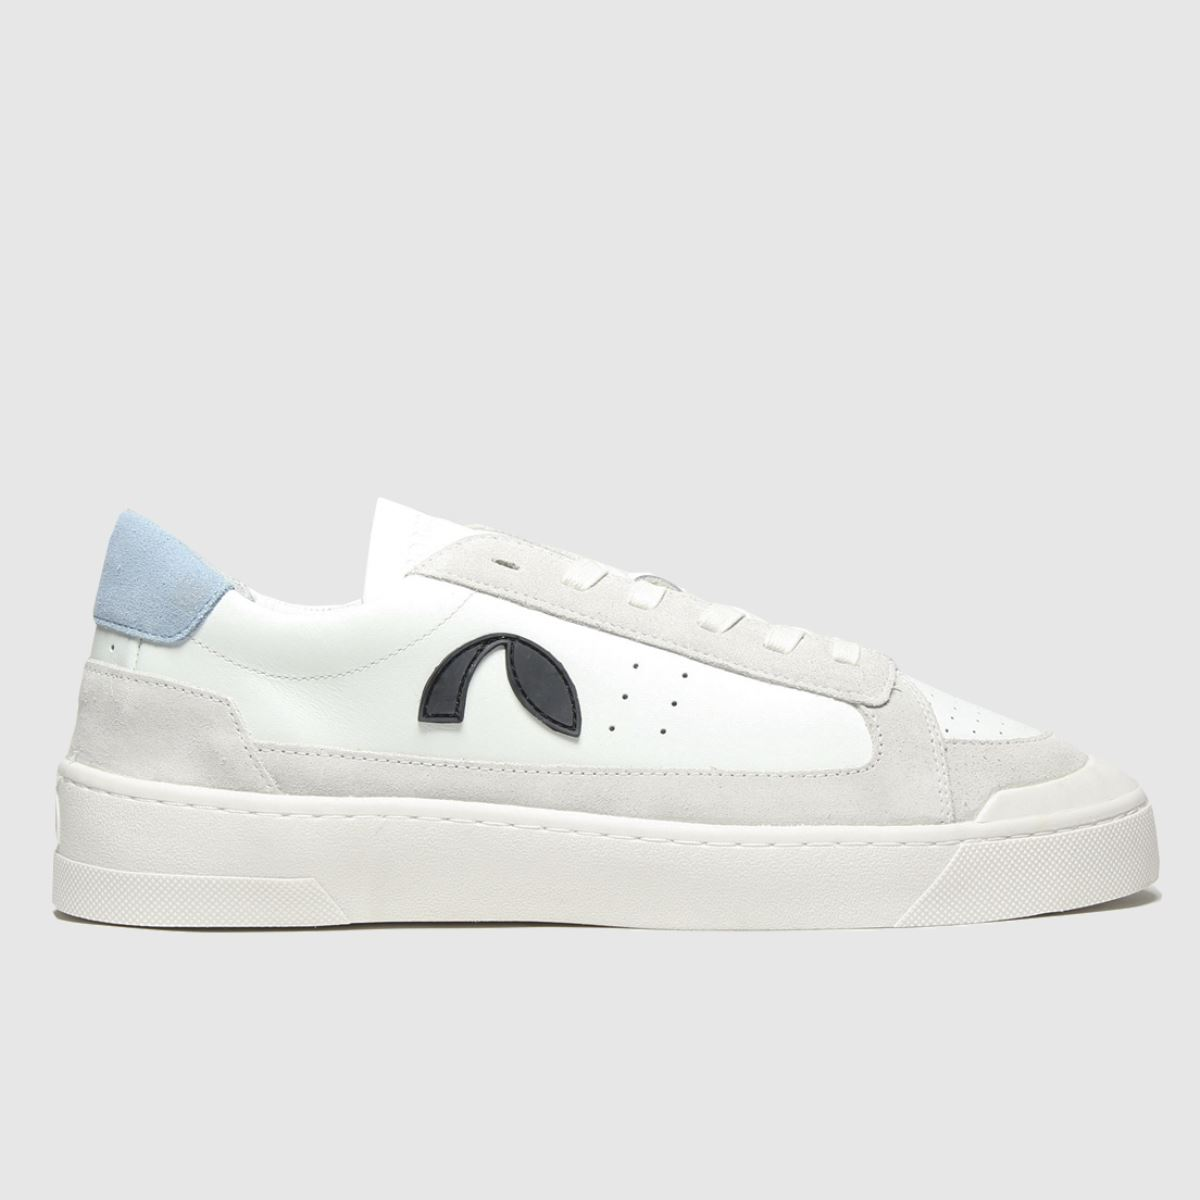 Roscomar White & Pl Blue Deck Leather Trainers